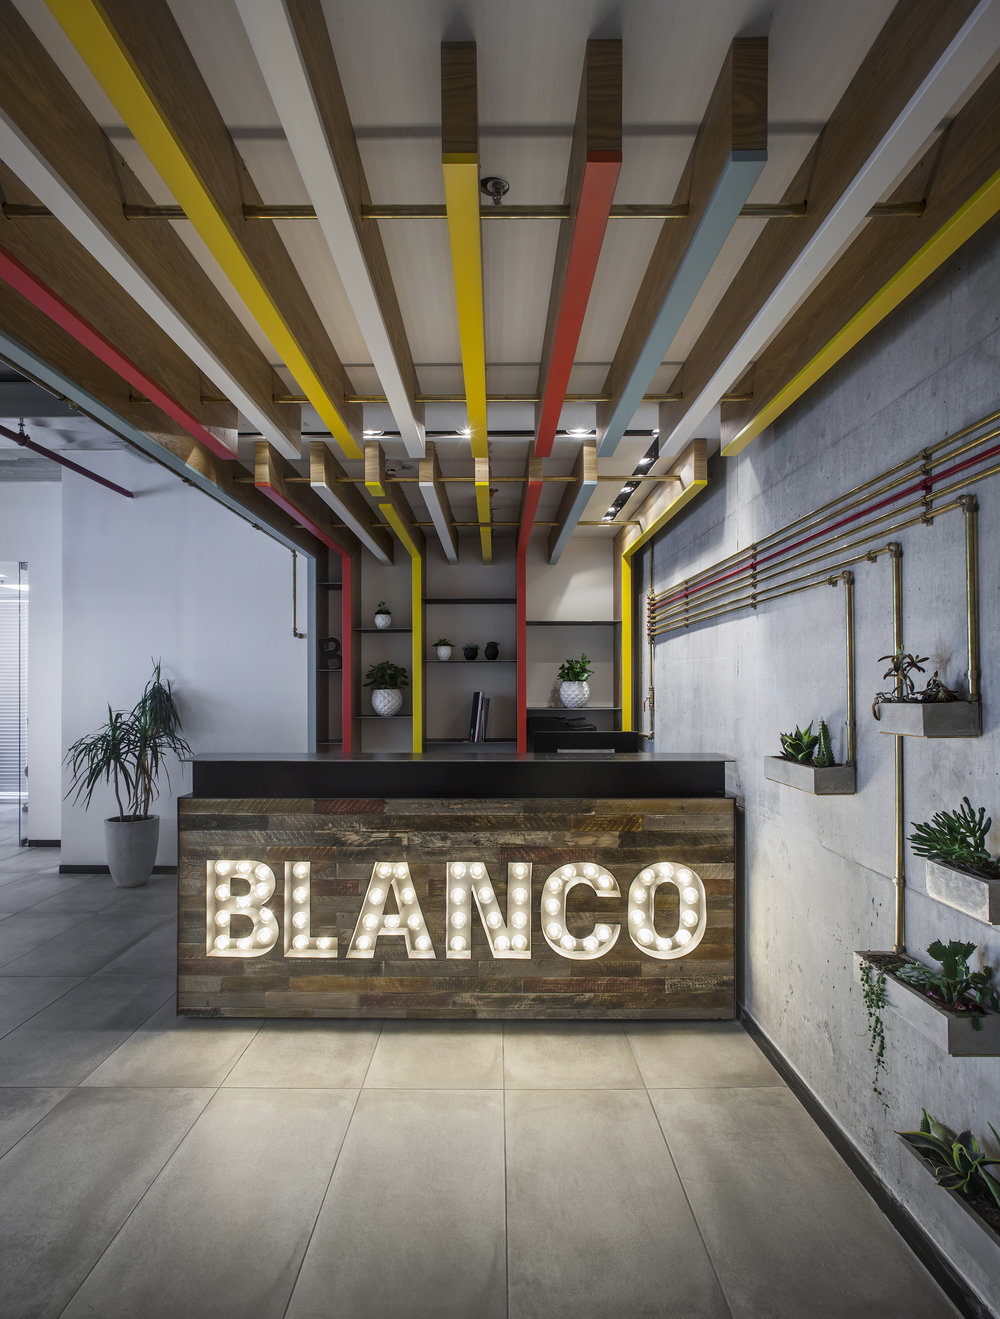 BLANCO   Blanco is a revolutionary advertising company   specializing in projects from varied fields. As the company started getting bigger they partnered up with Roy David Studio to create their new ...